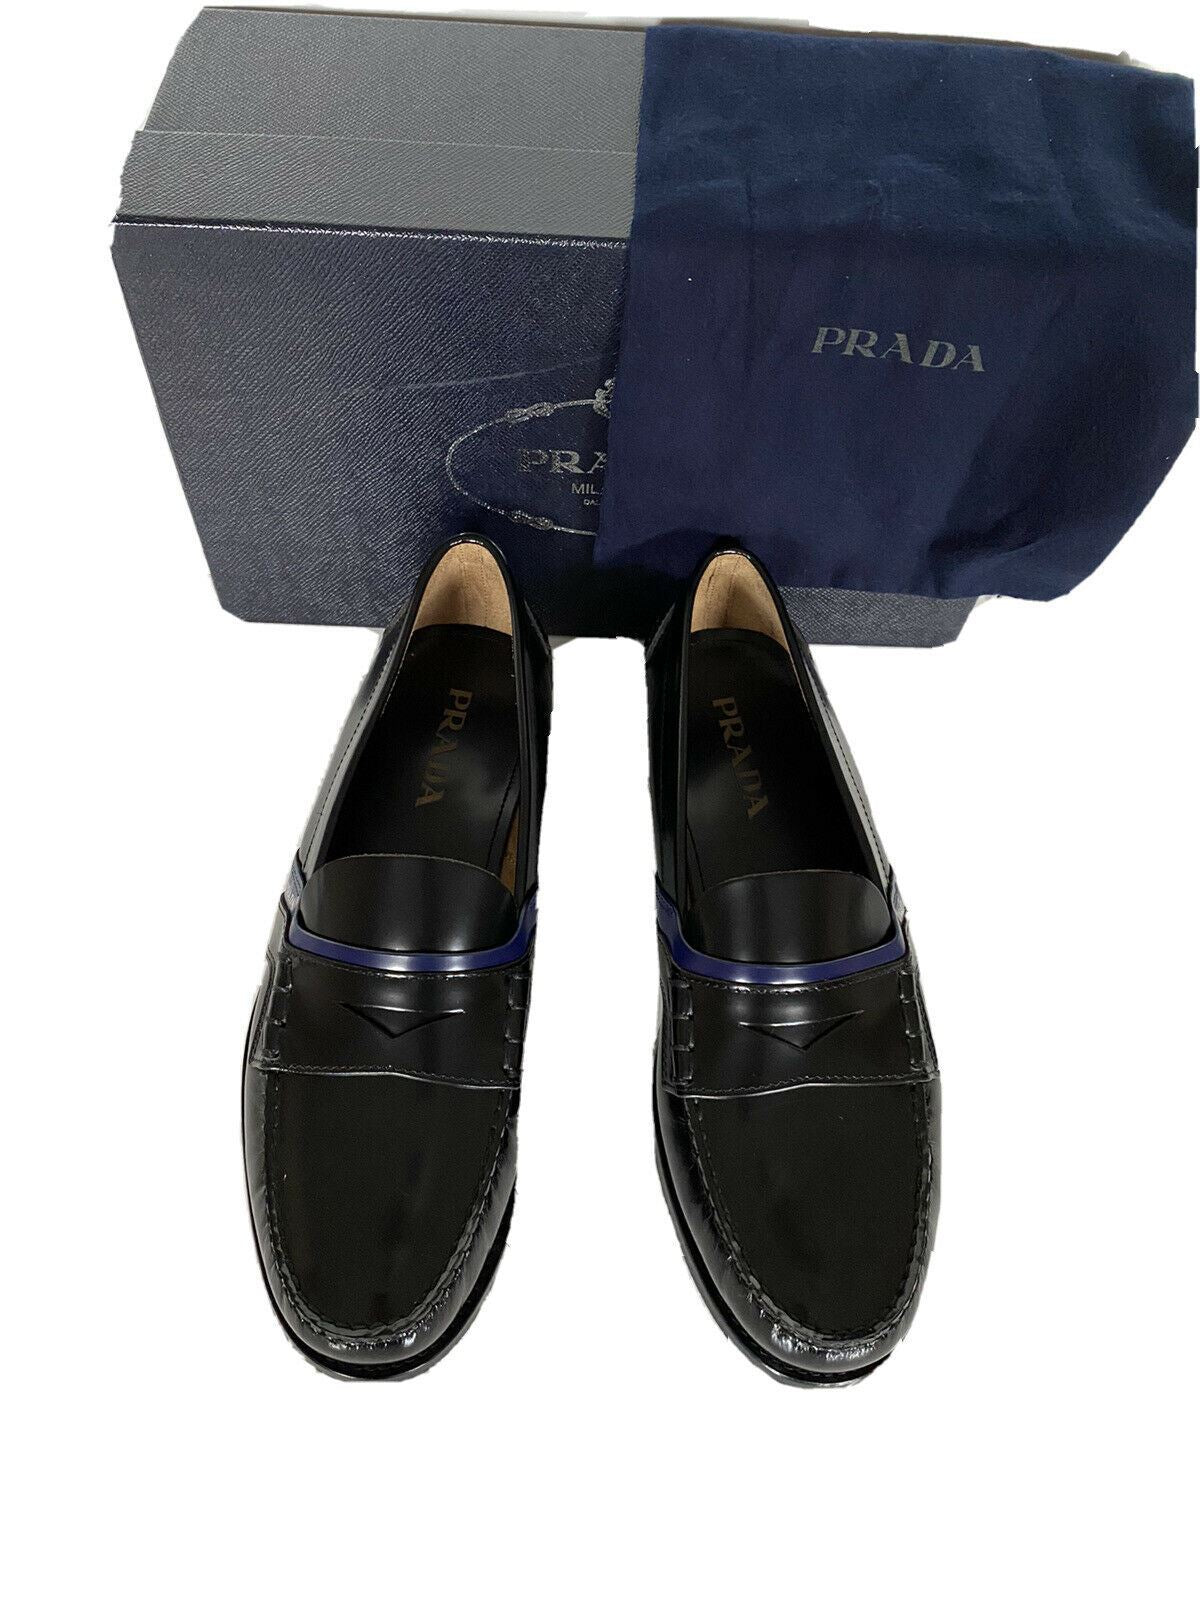 NIB PRADA Milano Men's Black Spazzolato Bico Leather Dress Shoes 12 US 2DG100